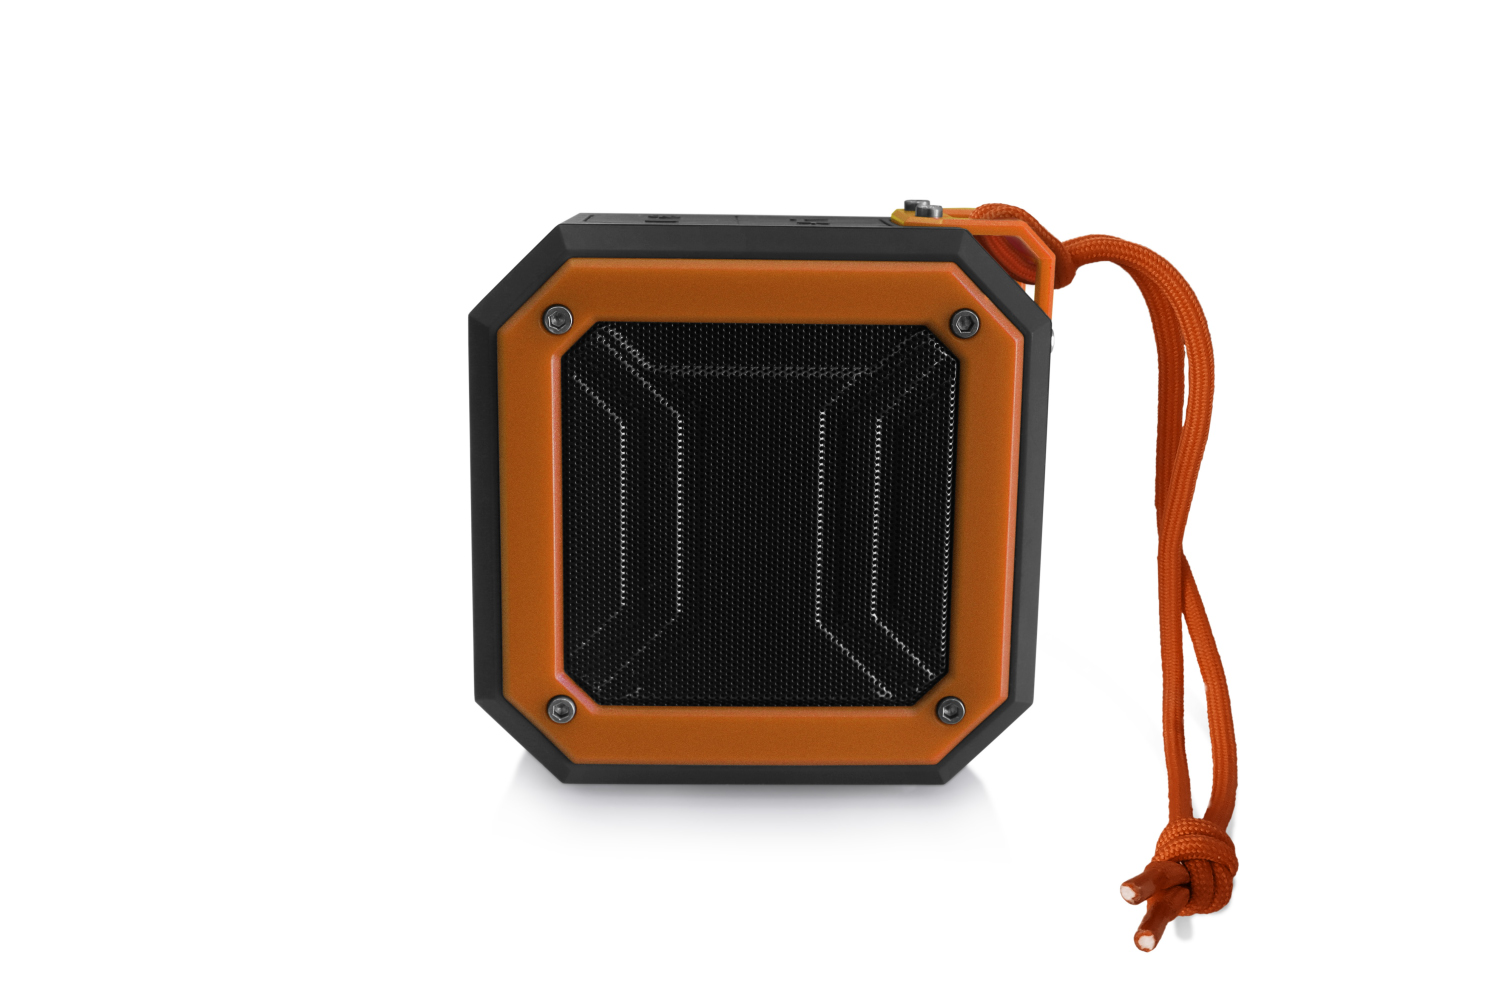 NewRixing NR-103 Mini Waterproof Speakers Factory